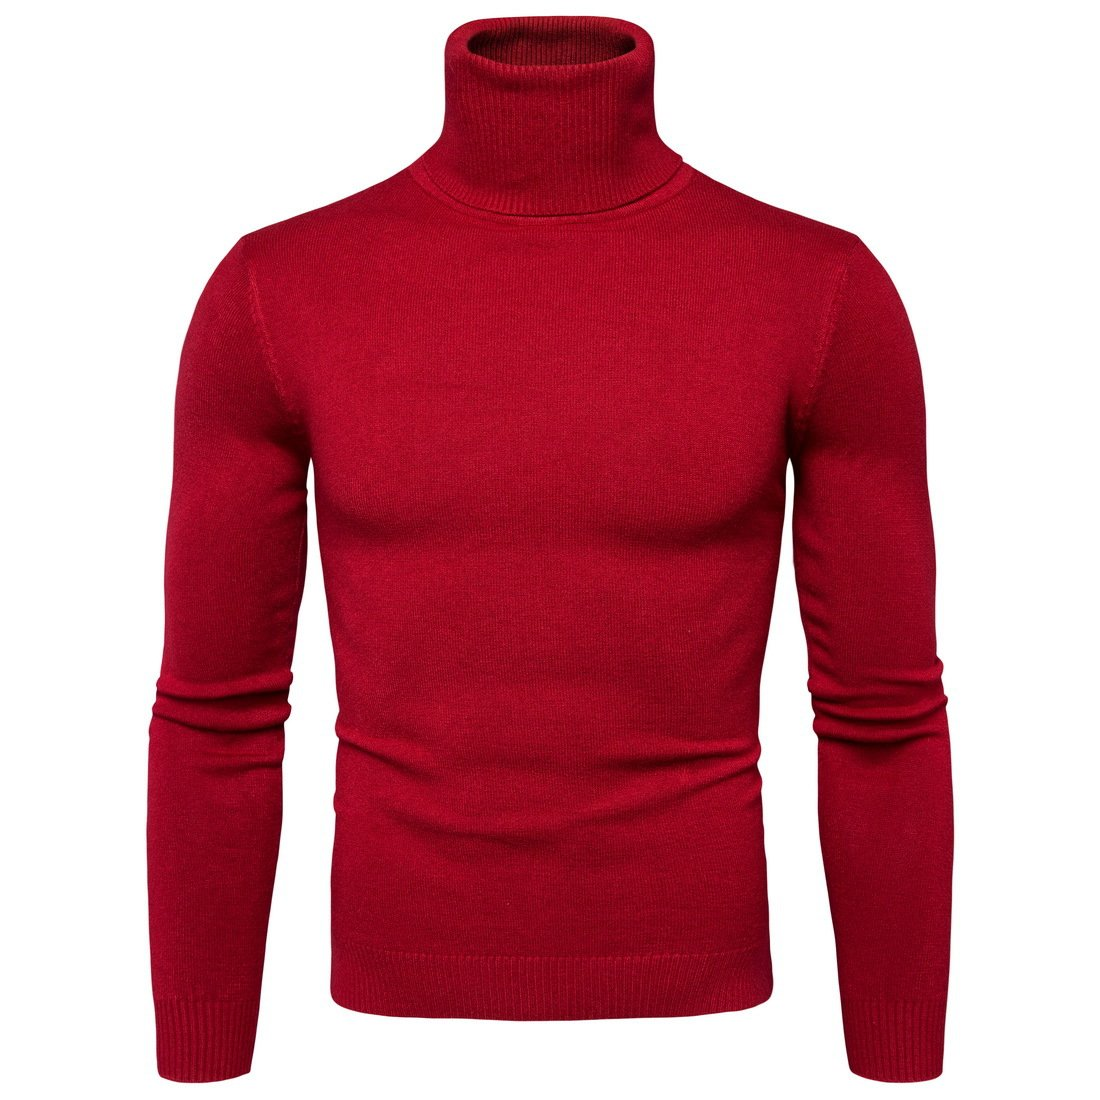 CCZZ Men's Turtleneck Roll Neck Knitted Jumper Warm Slim Fit Sweater